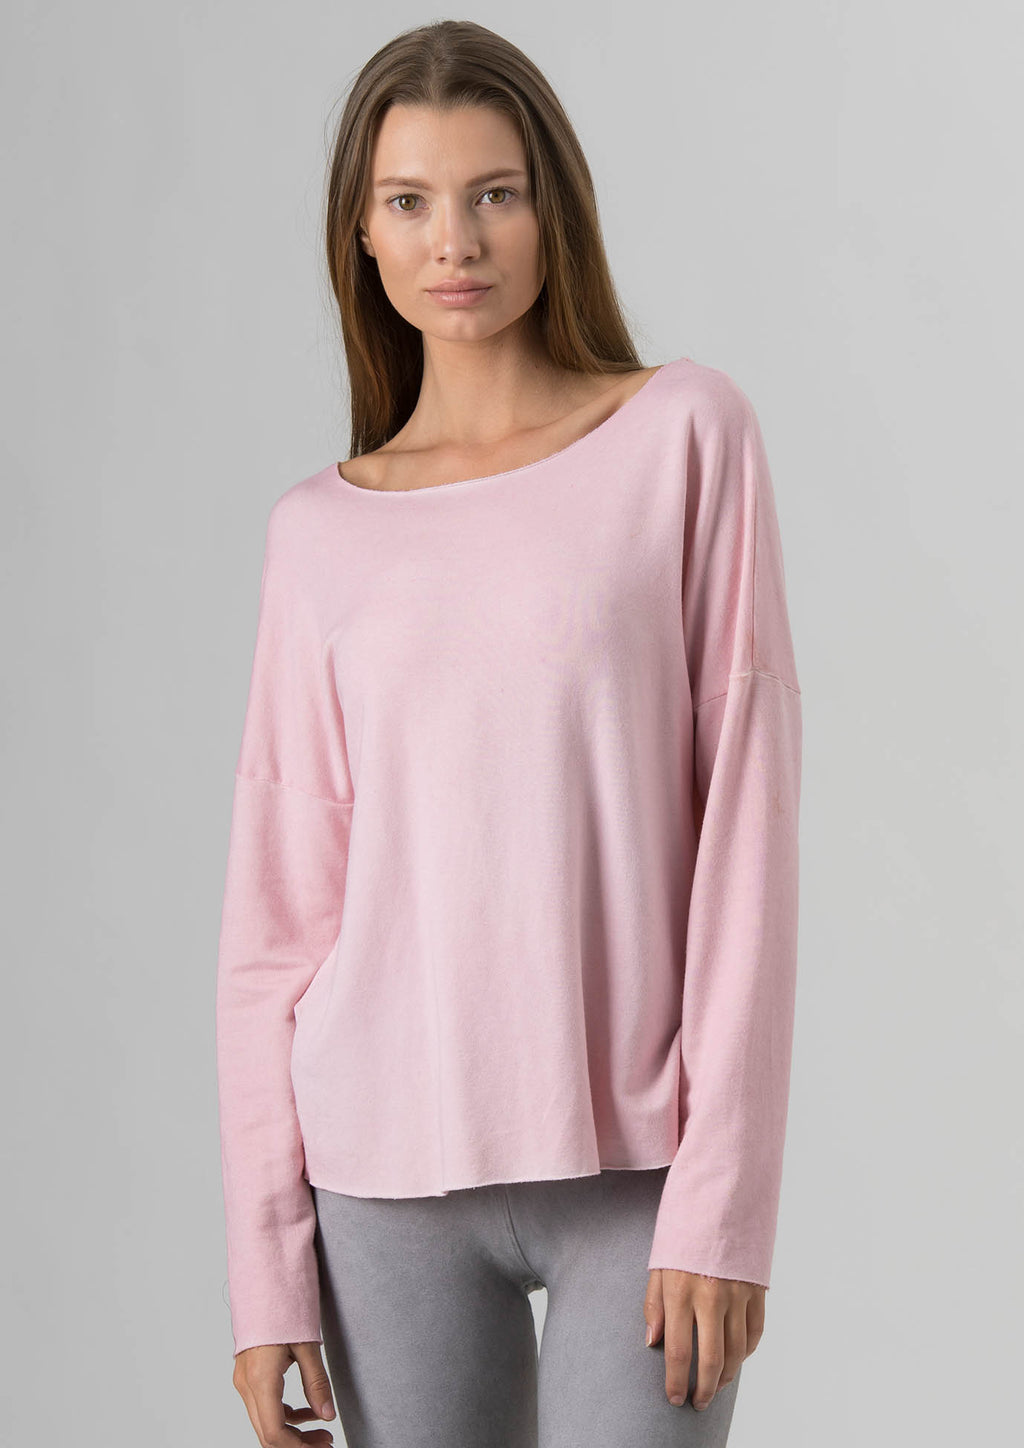 Mudra Long Sleeve